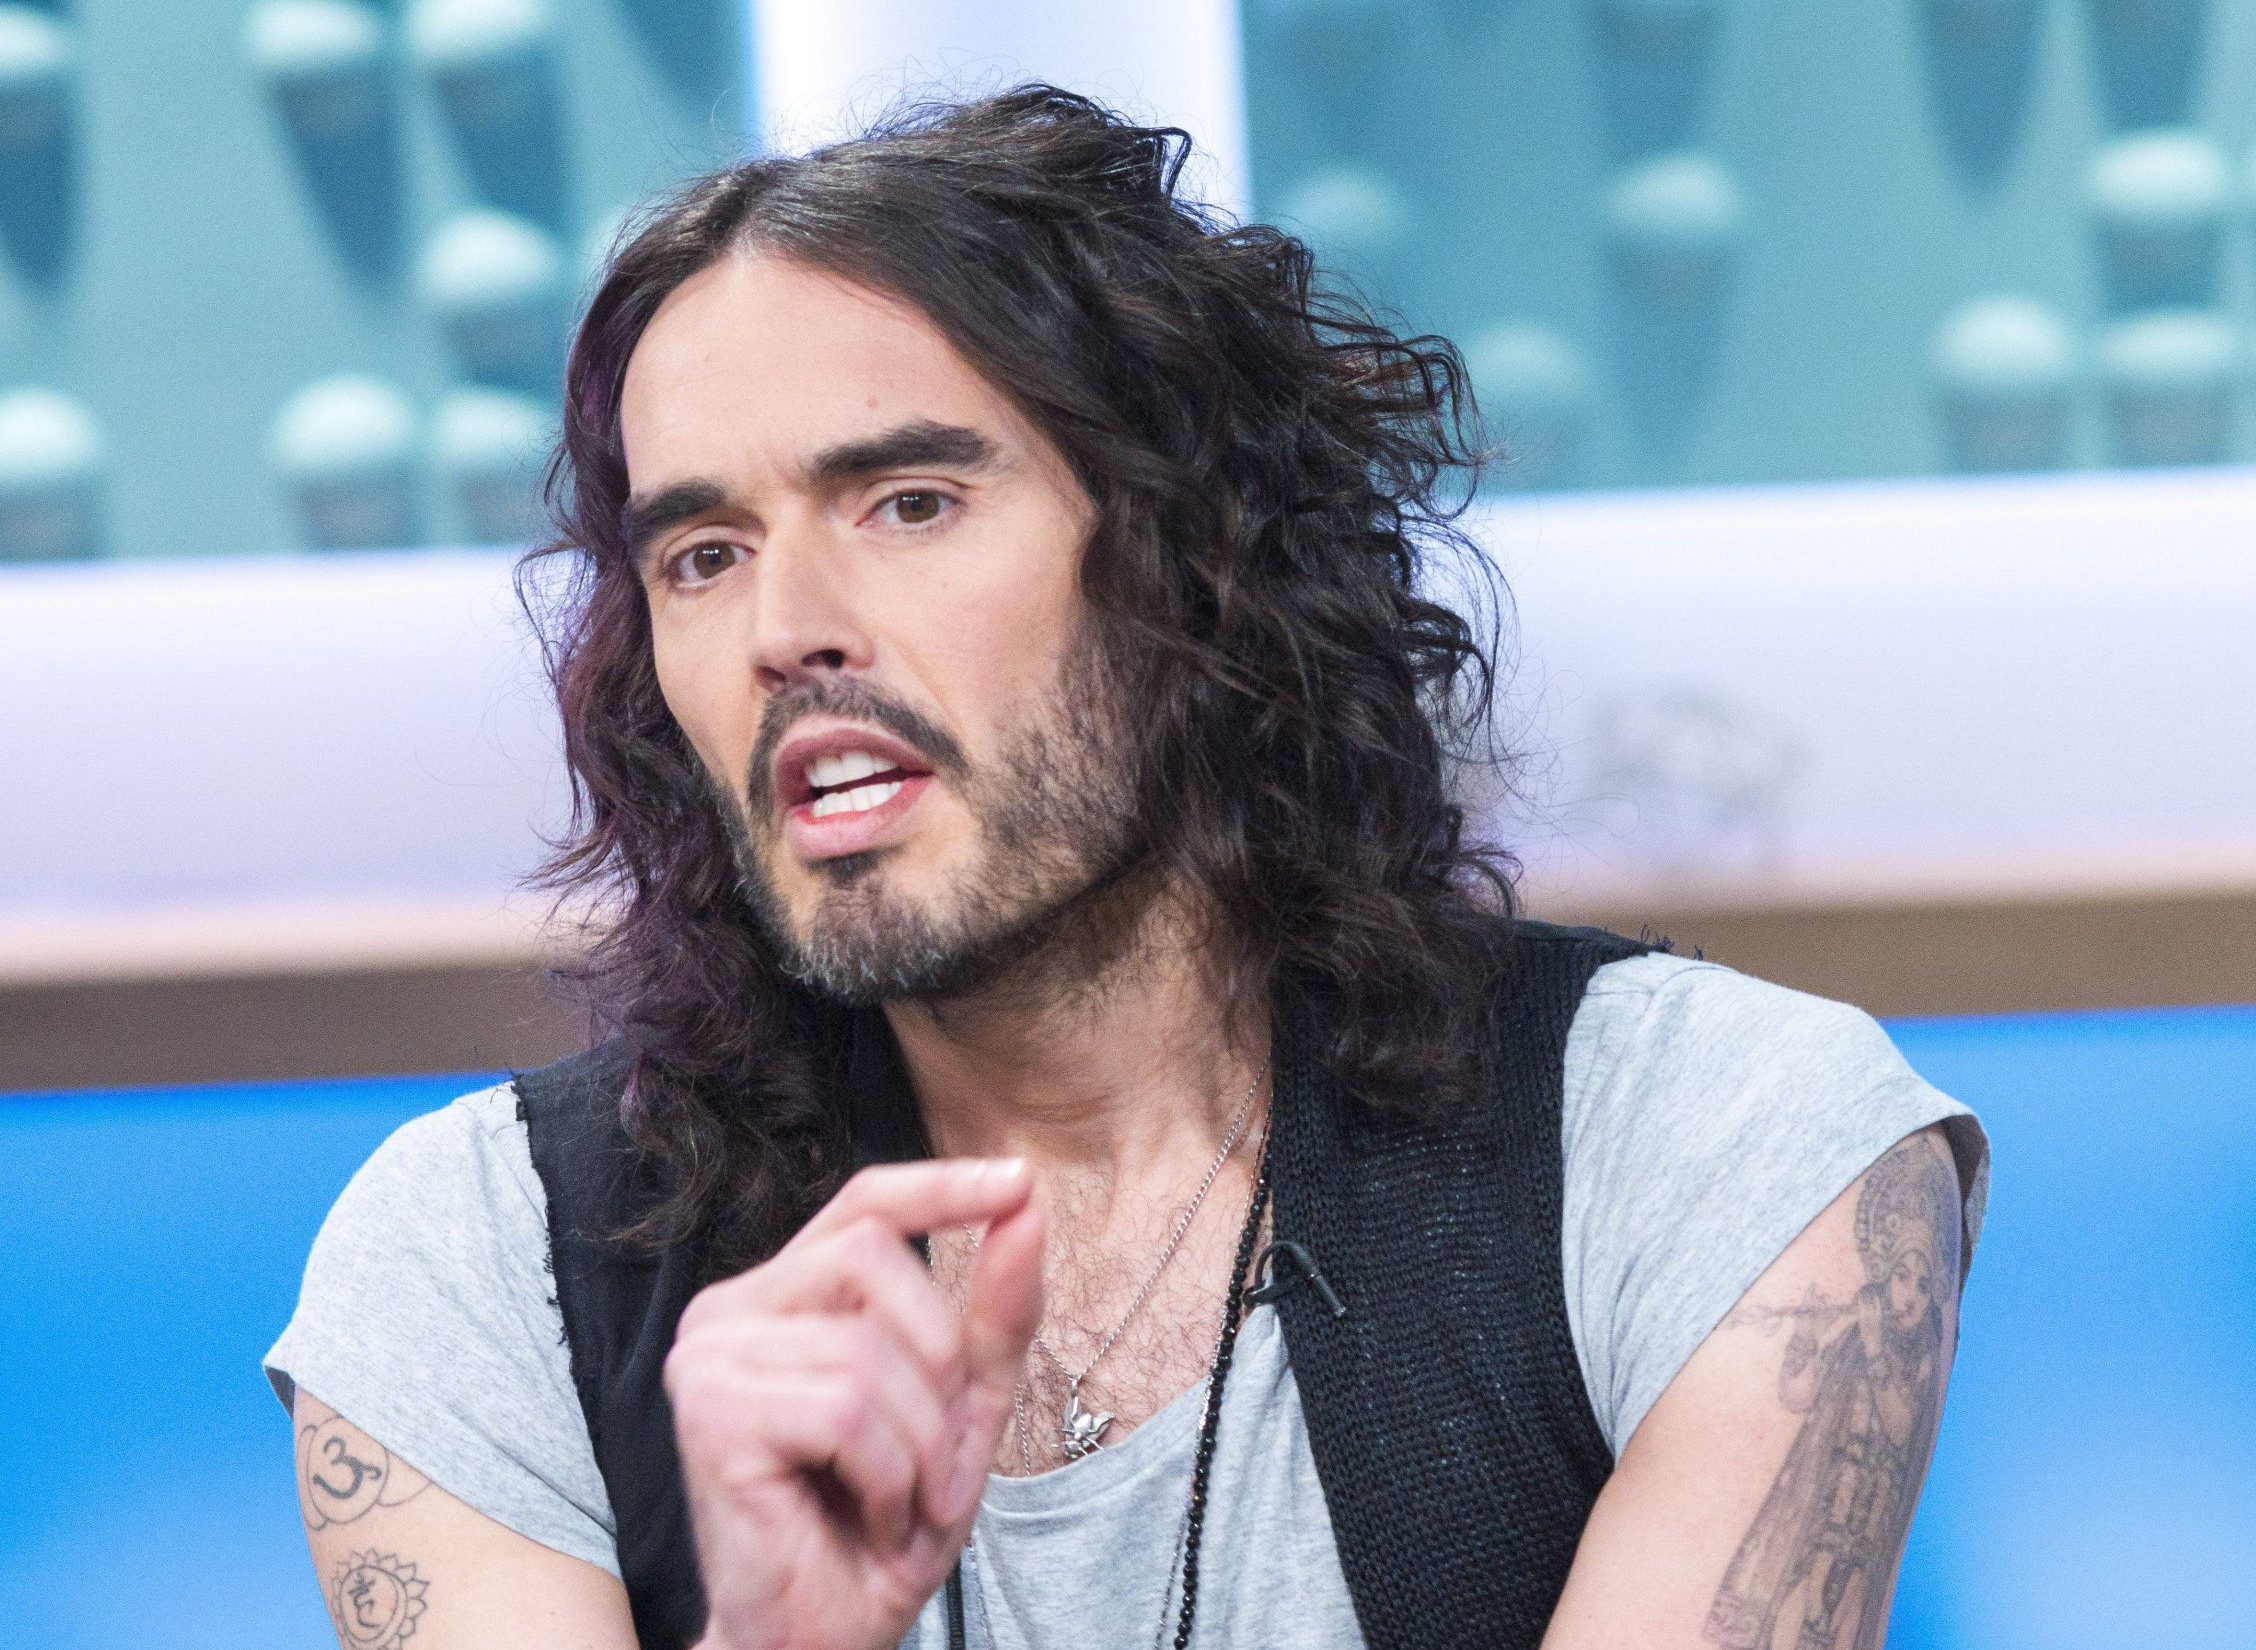 Mandatory Credit: Photo by Steve Meddle/REX/Shutterstock (8269226ef) Russell Brand 'Sunday Brunch' TV show, London, UK - 05 Feb 2017